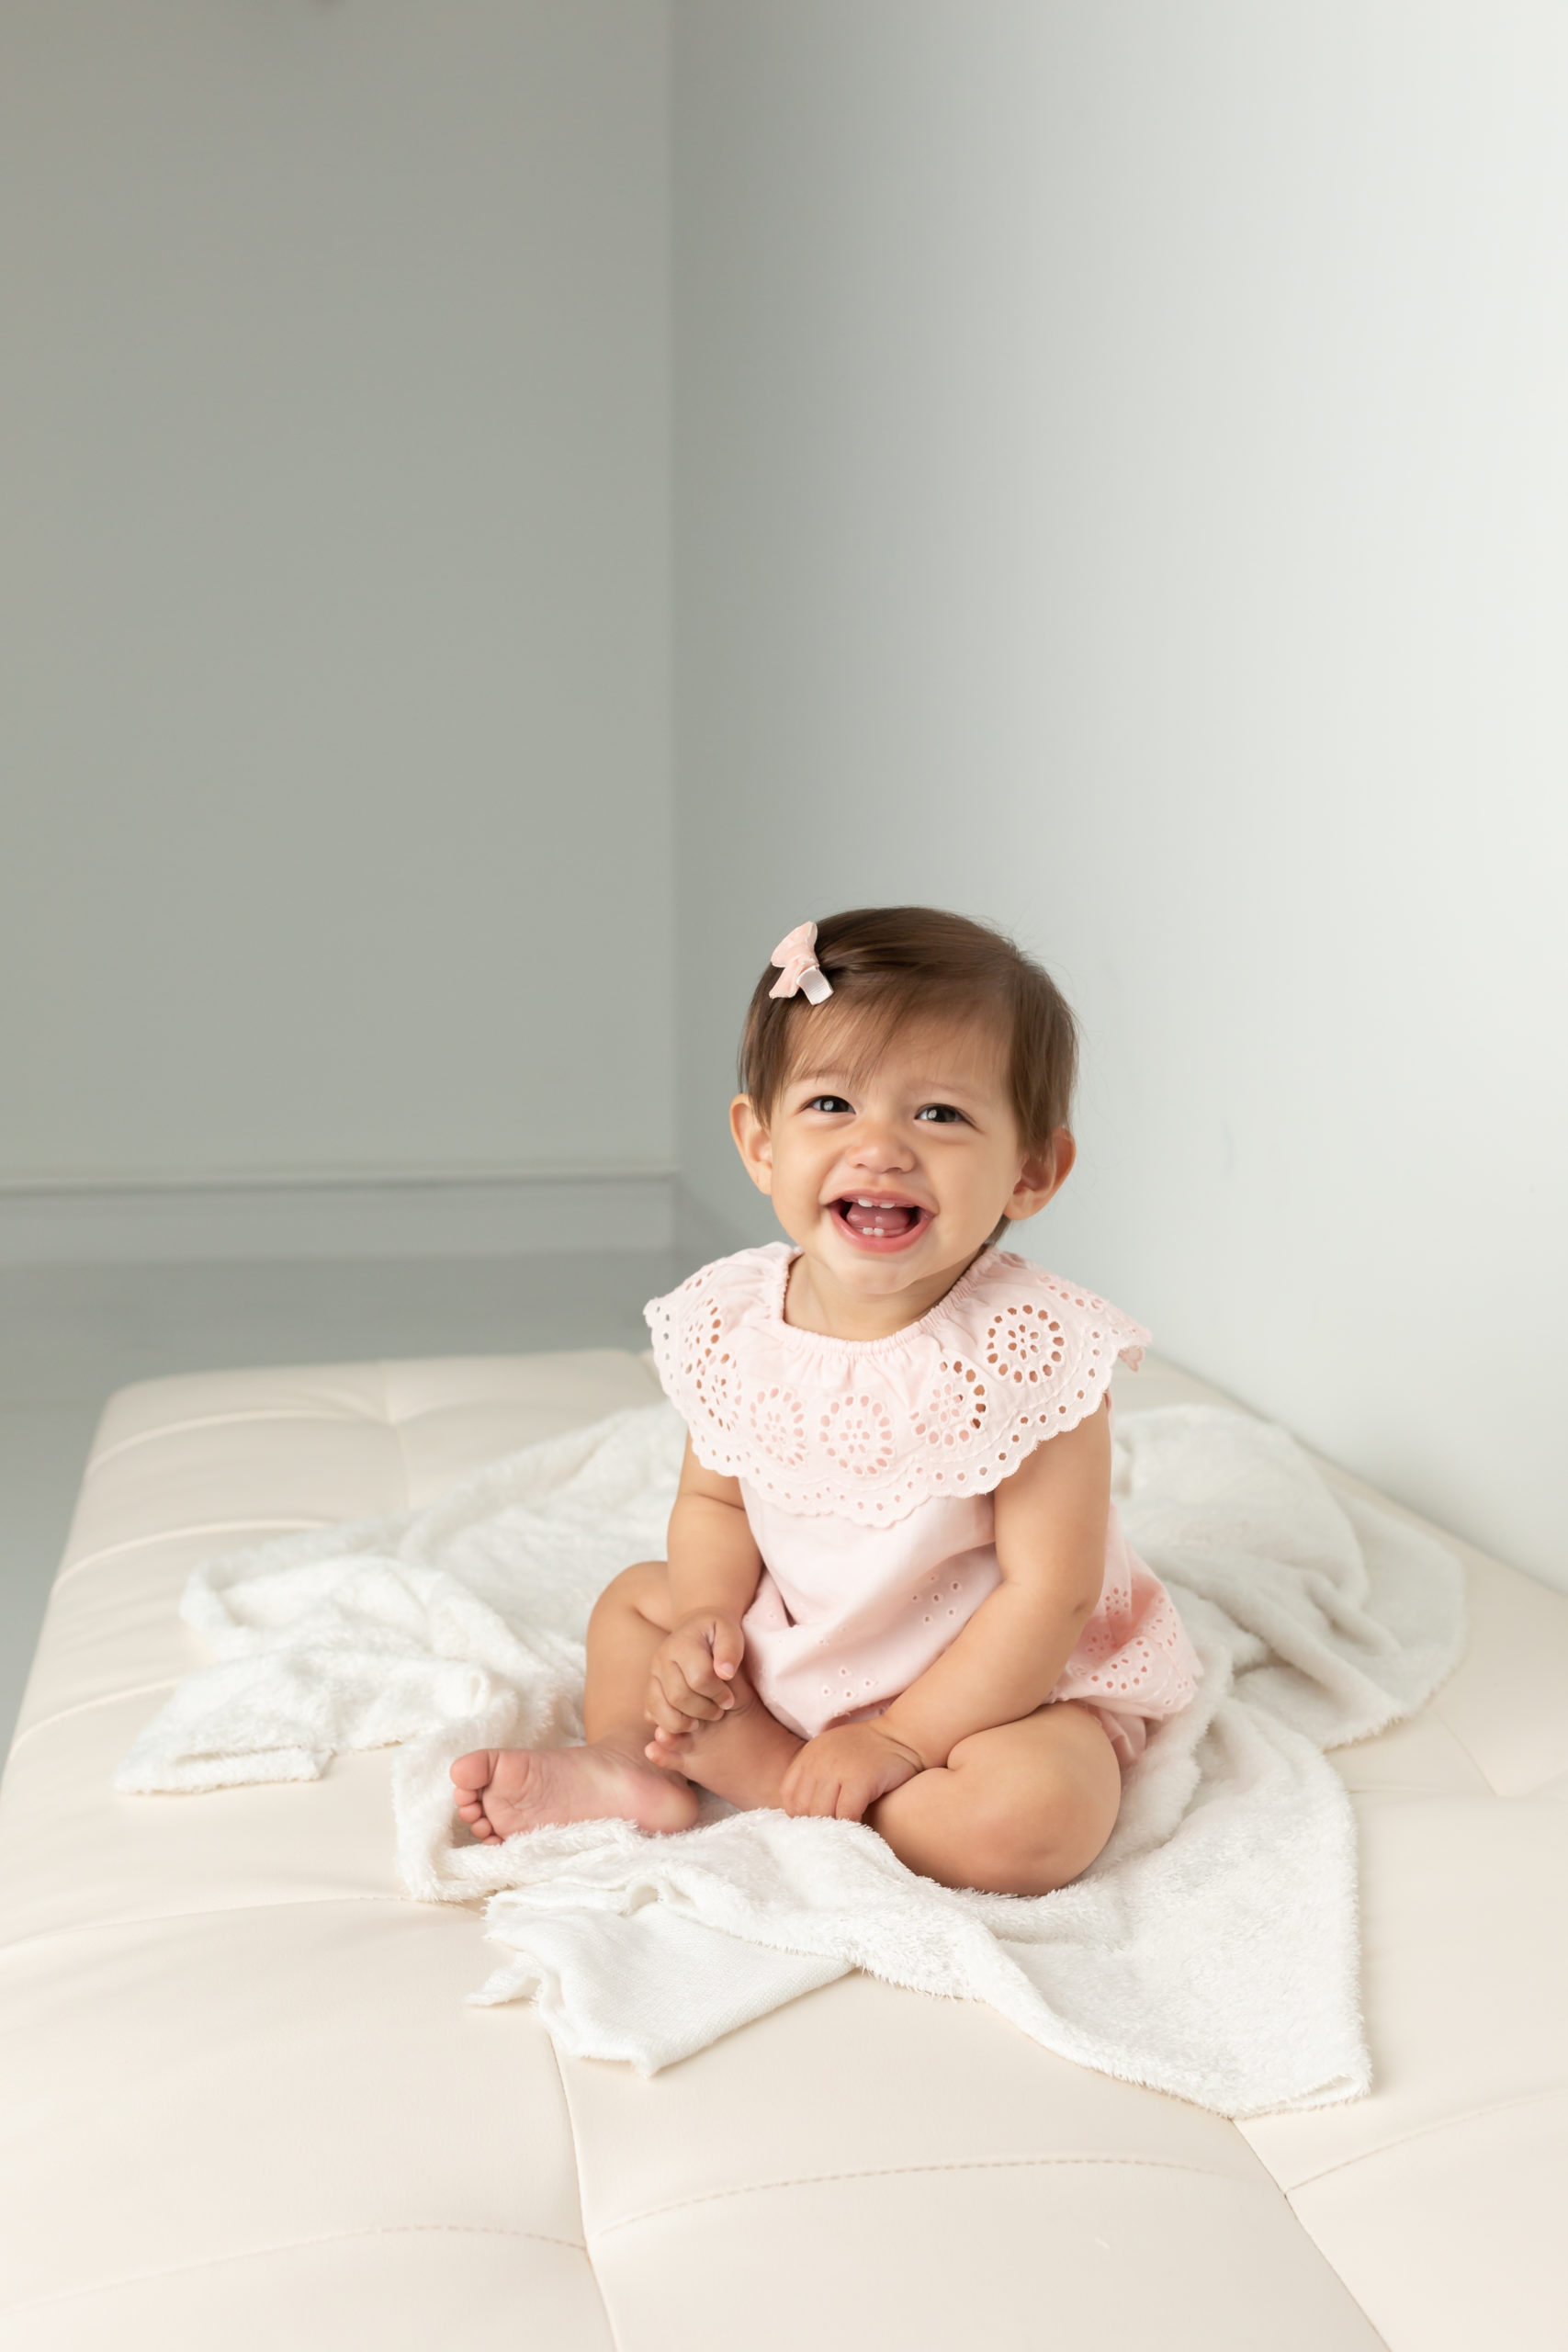 9 month old girl smiling